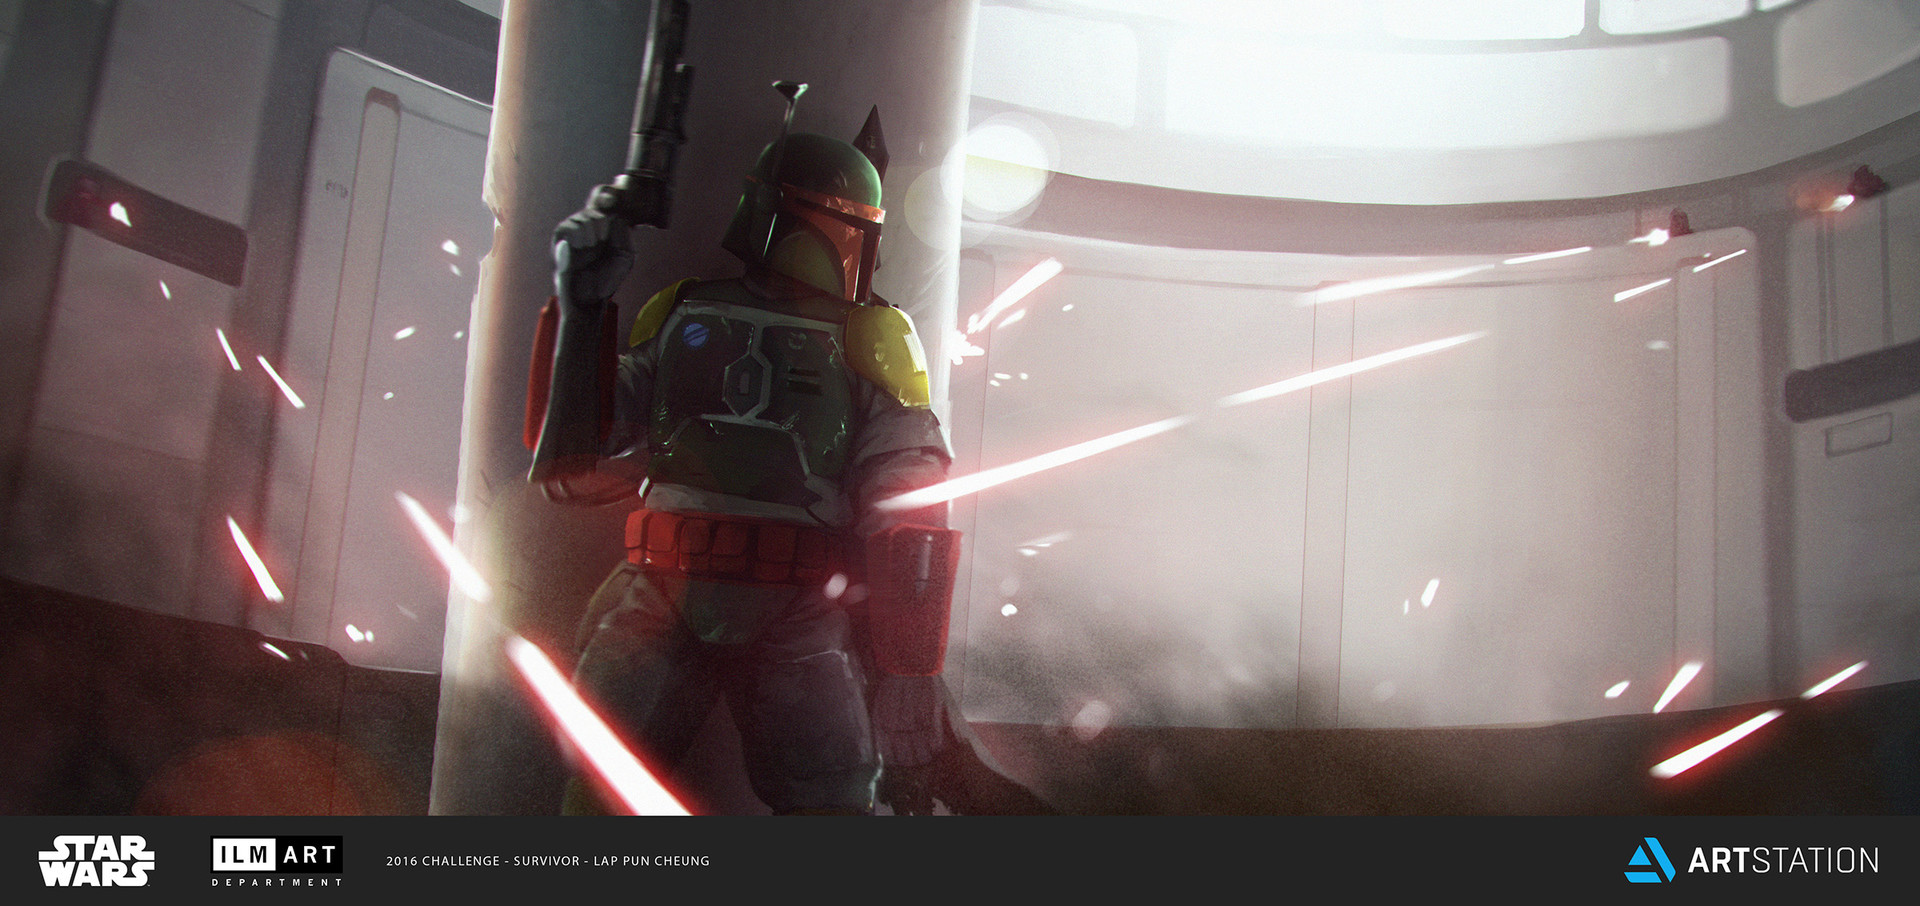 Lap pun cheung the moment keyframe shootout v3 watermarked online